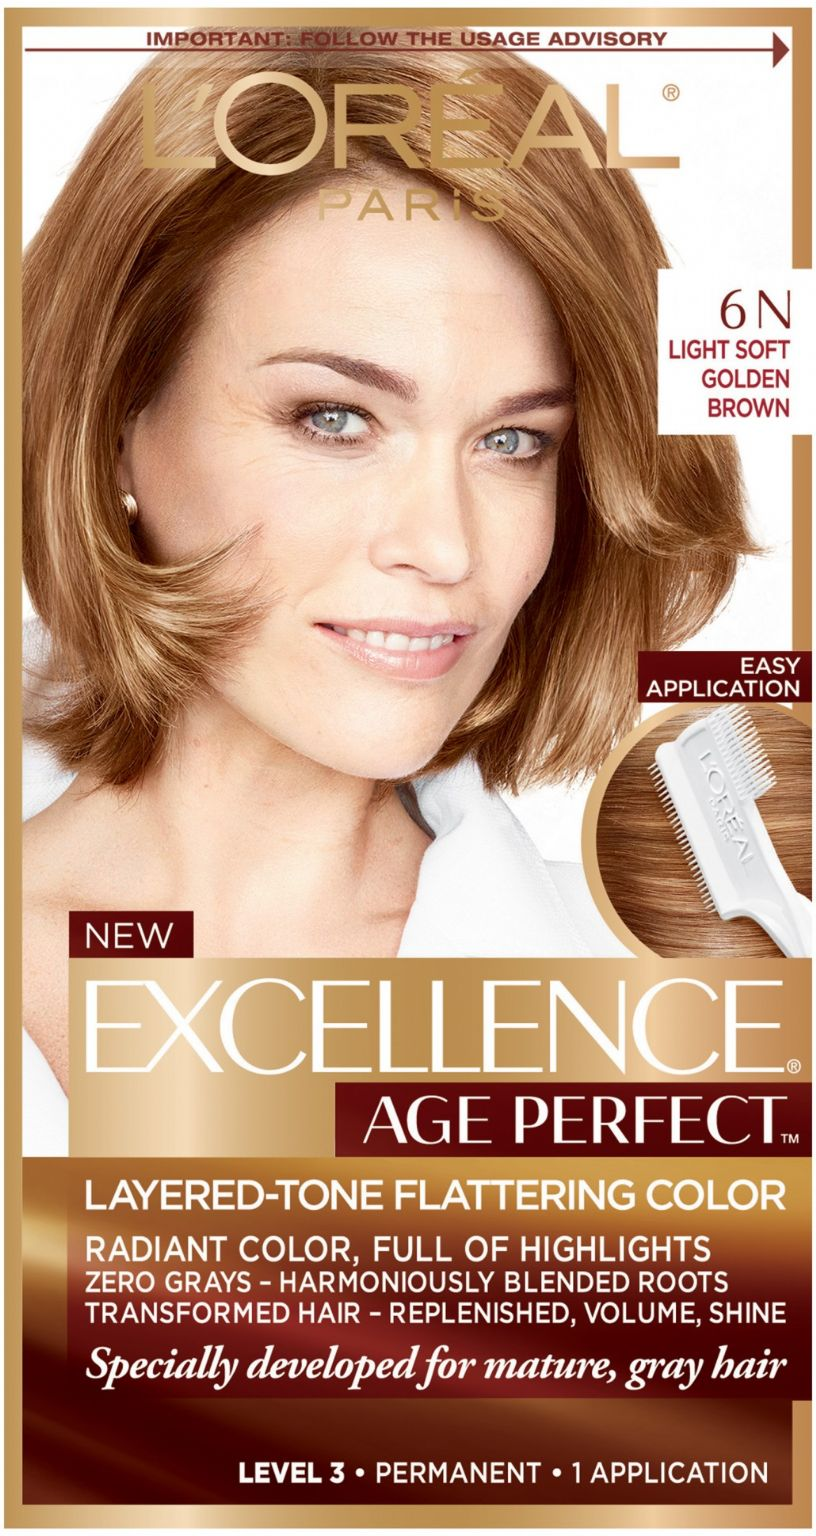 L'Oreal Excellence Age Perfect reviews, photos - Makeupalley